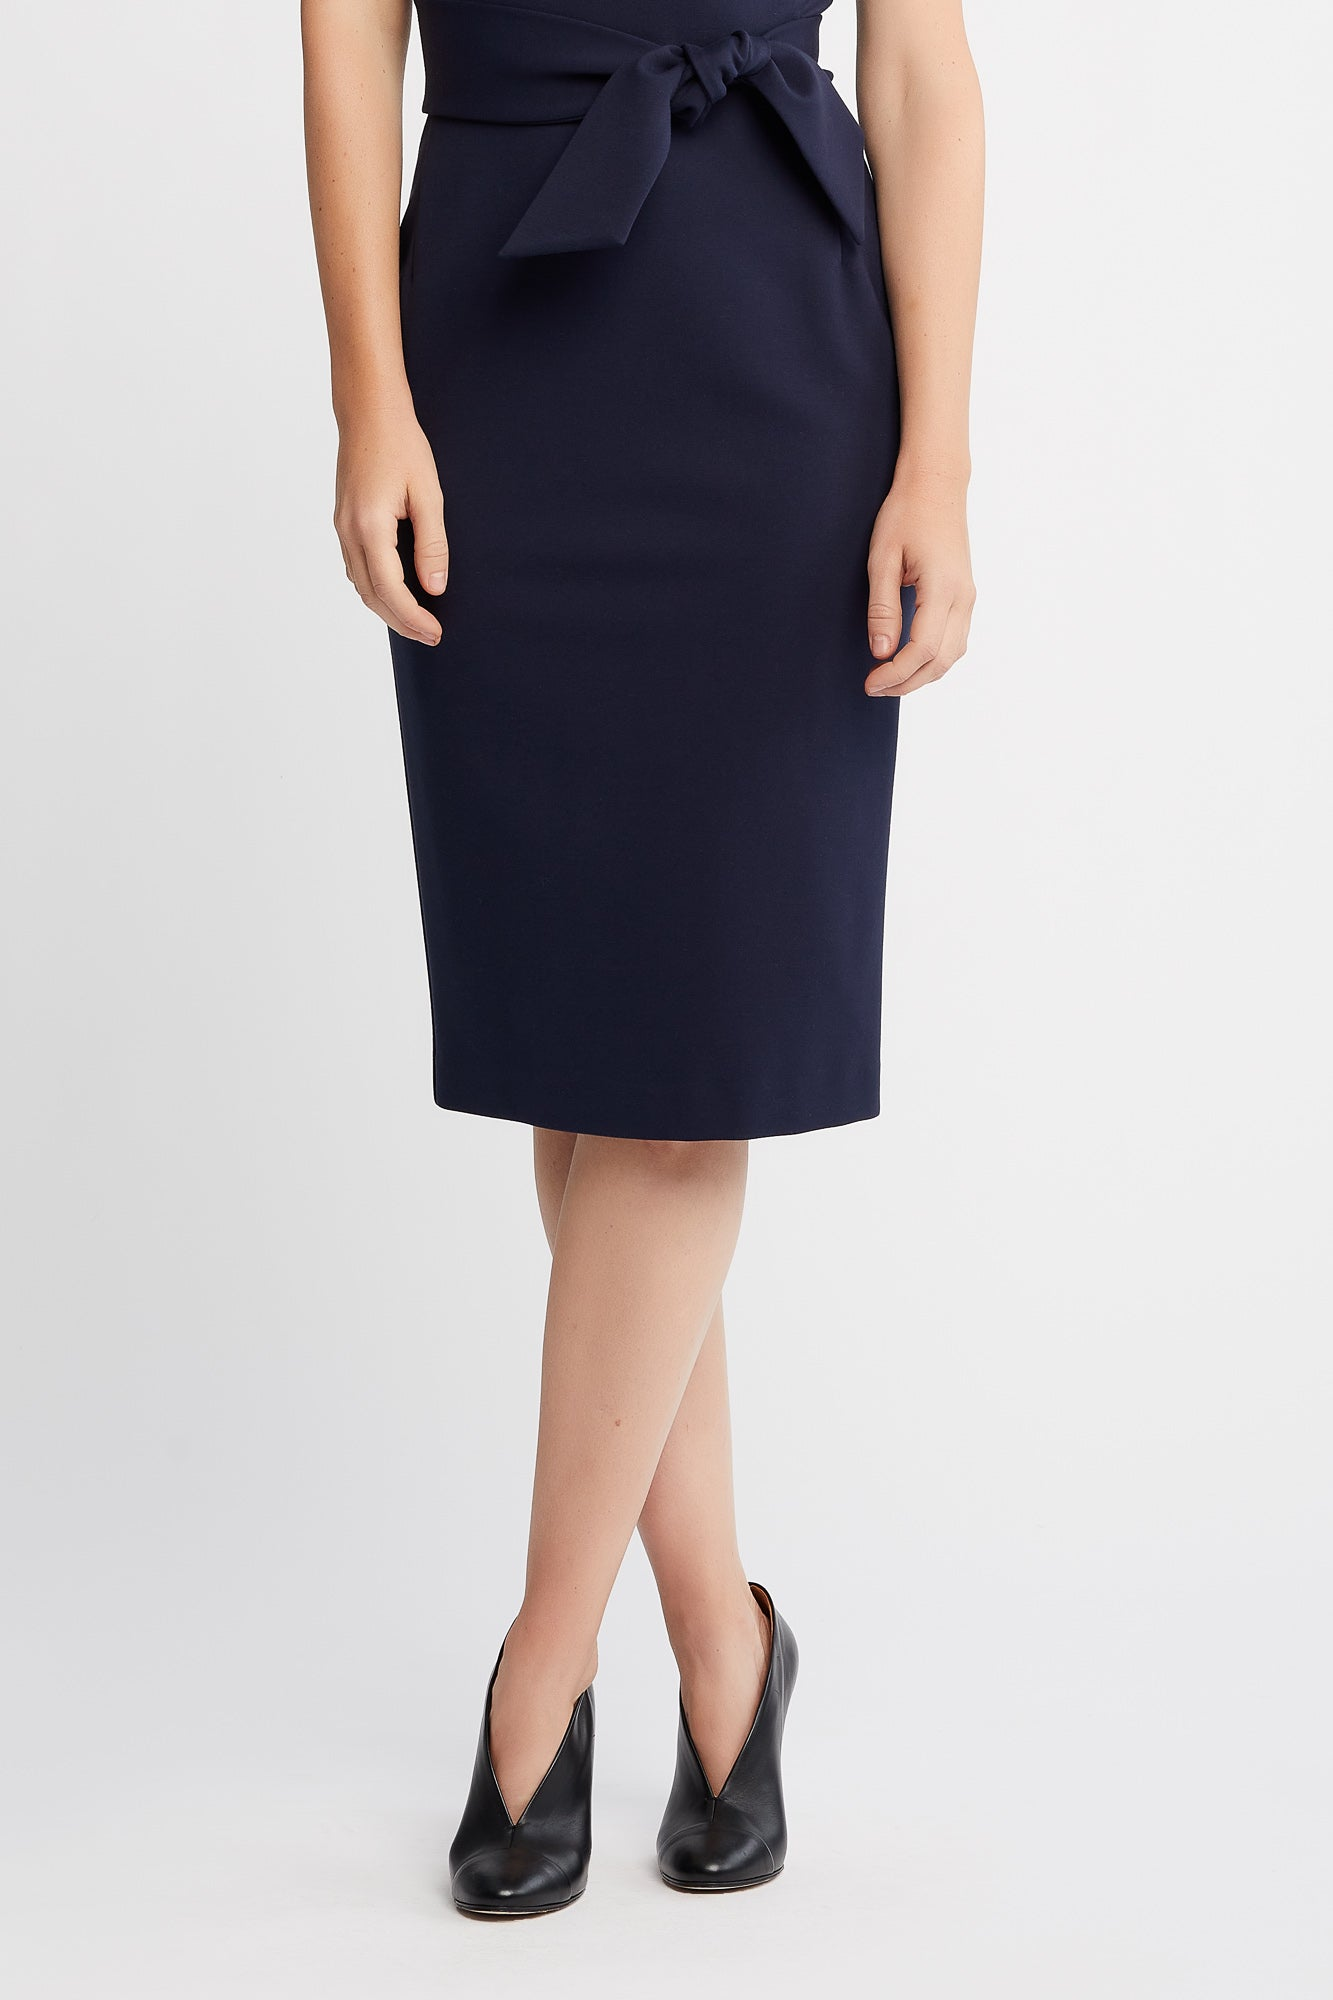 Ruth Short Sleeve Sheath Navy Work and Cocktail  Dress with Belt